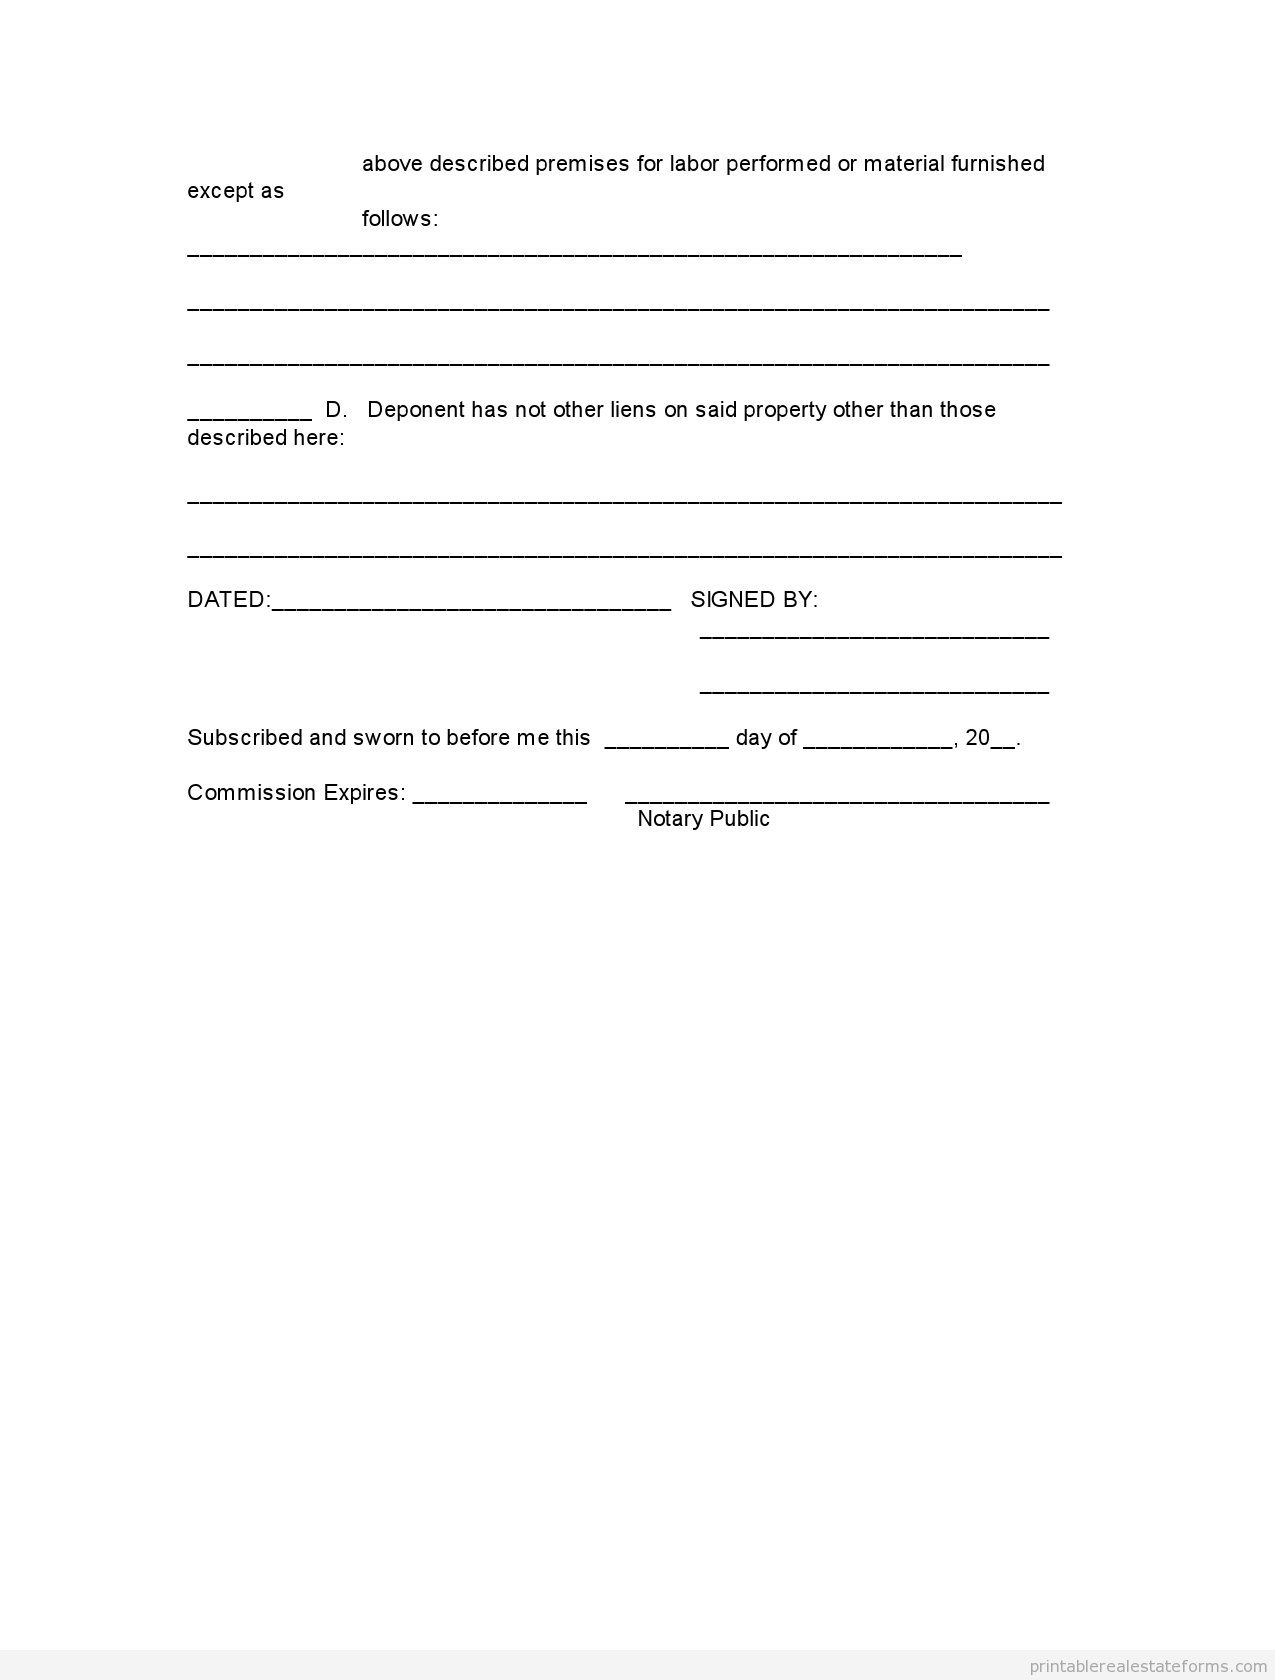 Printable Affidavit Of Ownership  Template   Sample Forms